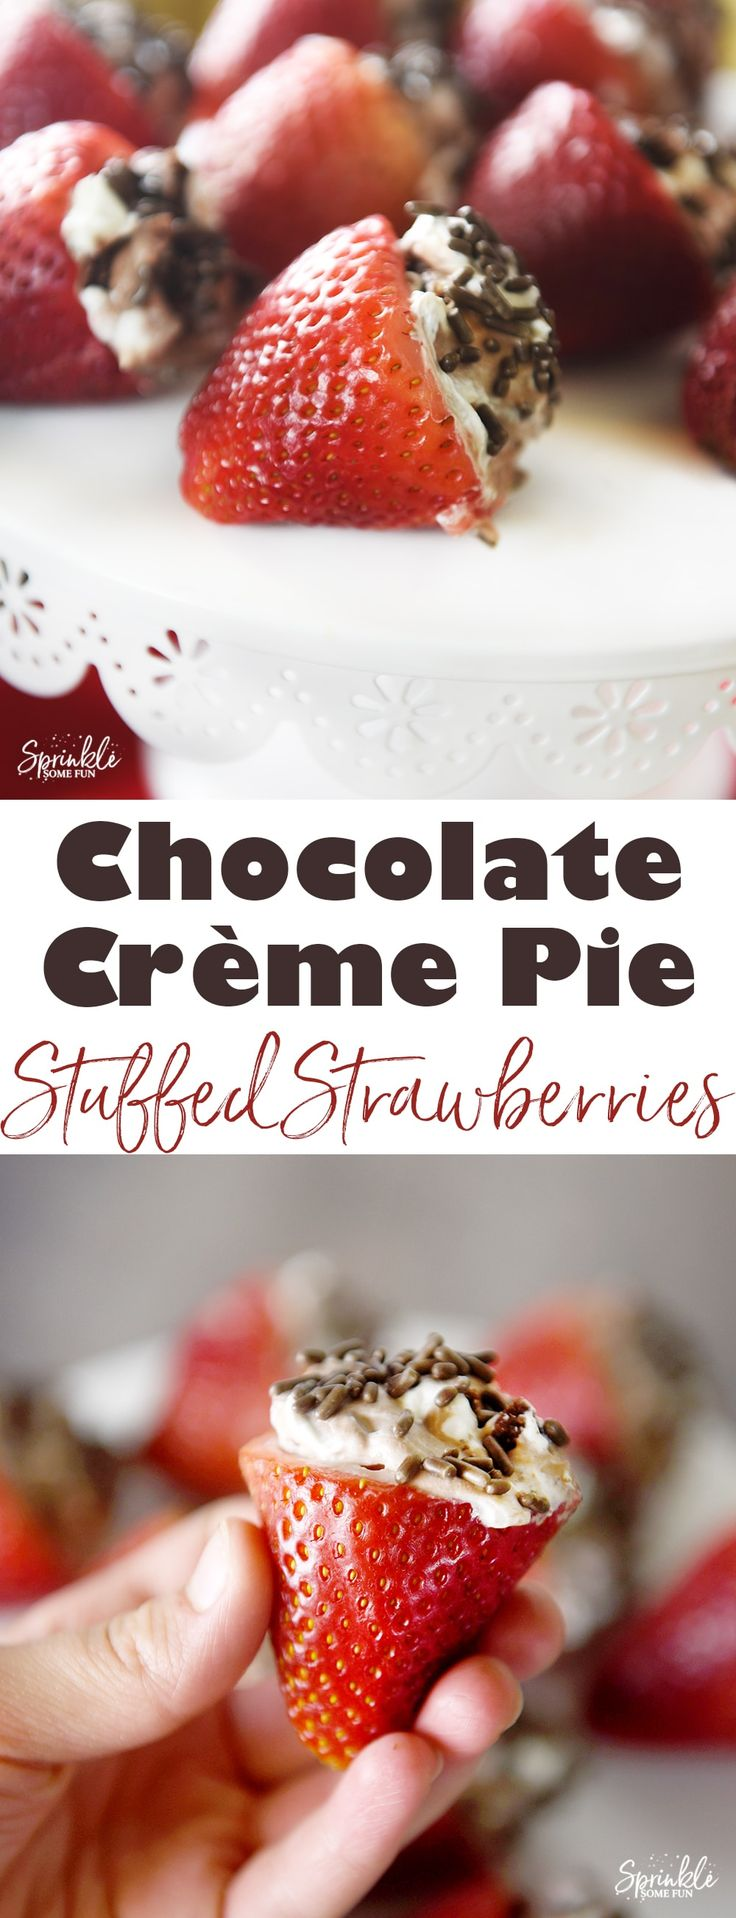 Chocolate Crème Pie Stuffed Strawberries are filled with a delicious Edwards Hershey Crème Pie and then sprinkled. You will LOVE this easy chocolate strawberry dessert!  #SameTasteNewLook #ad